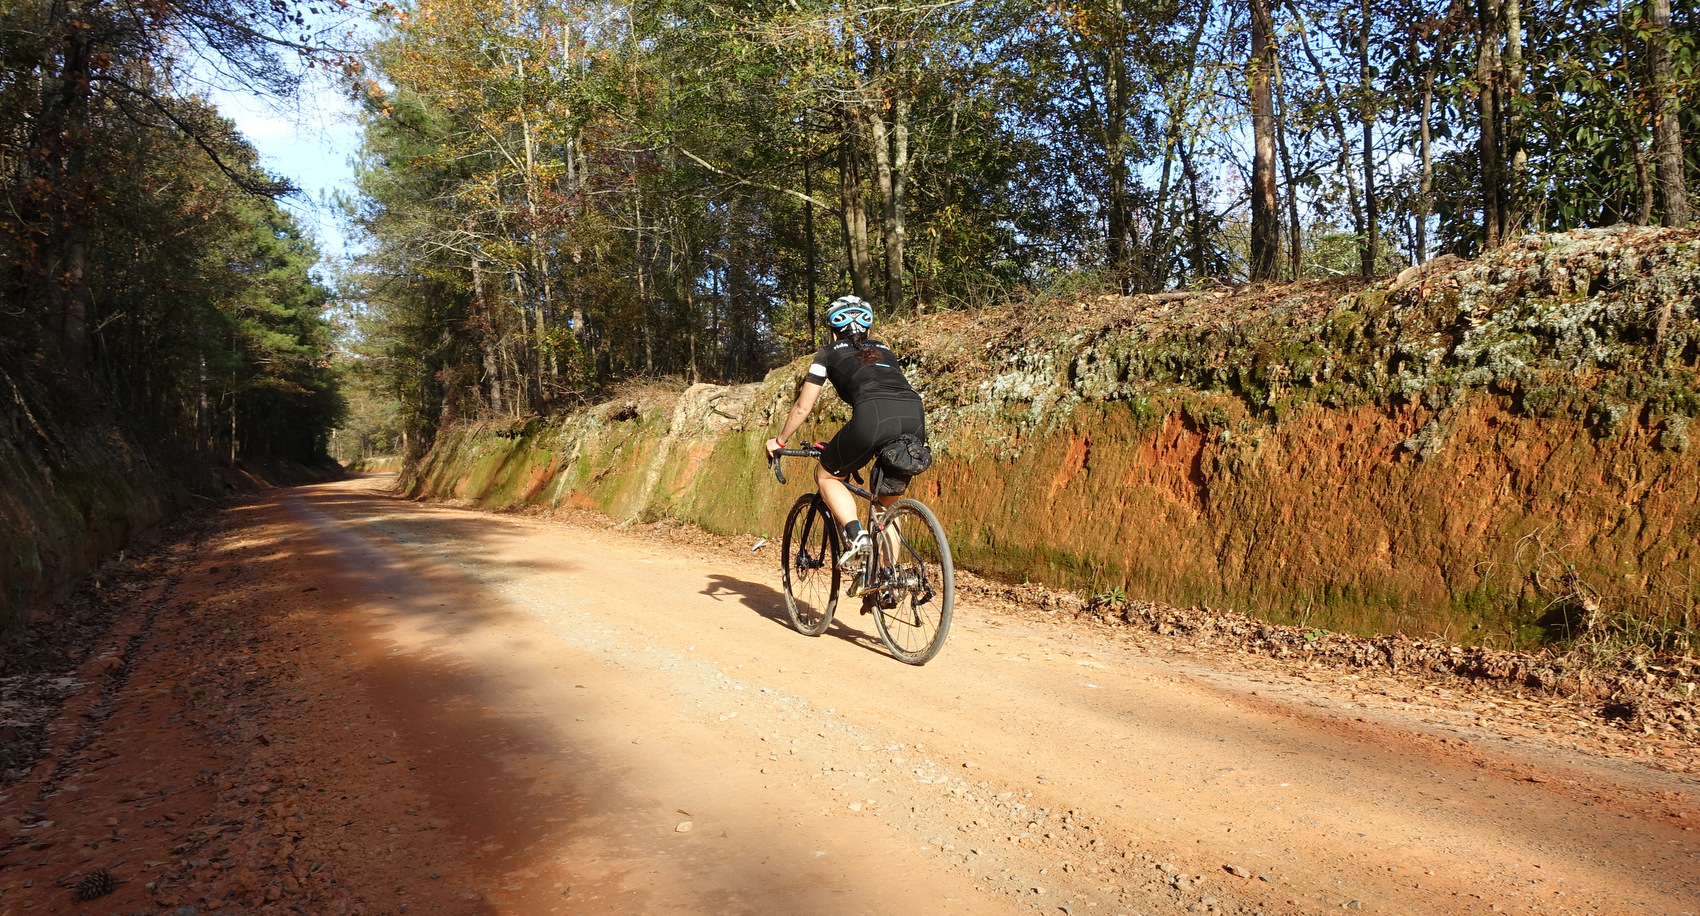 One of the secret dirt roads you'll be riding in Georgia.